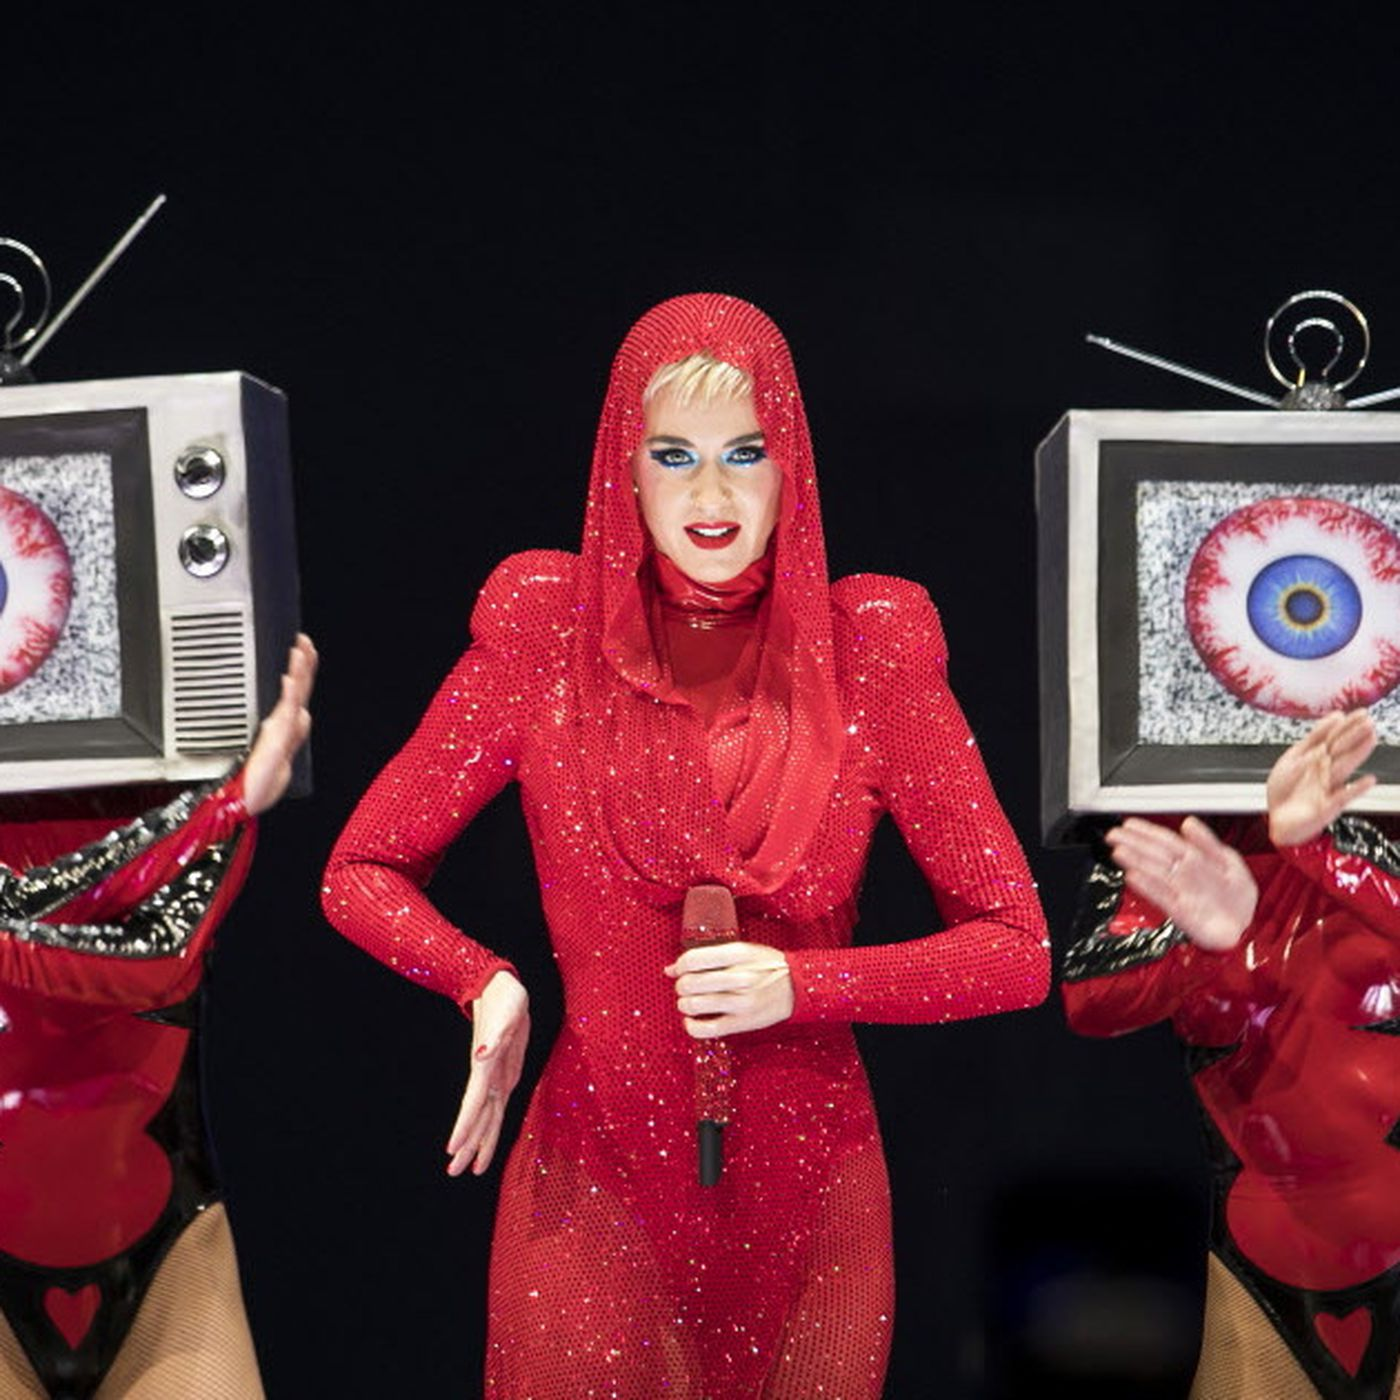 9a8a6a60ed8 Katy Perry wows at United Center in eye-popping extravaganza - Chicago  Sun-Times